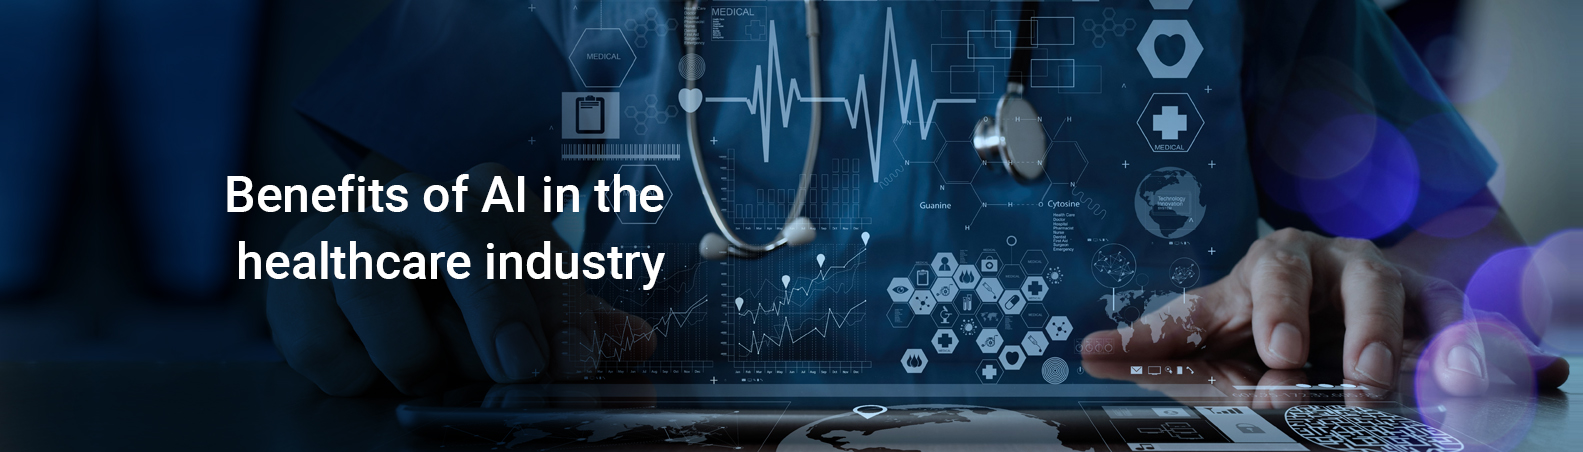 Benefits of AI in healthcare industry